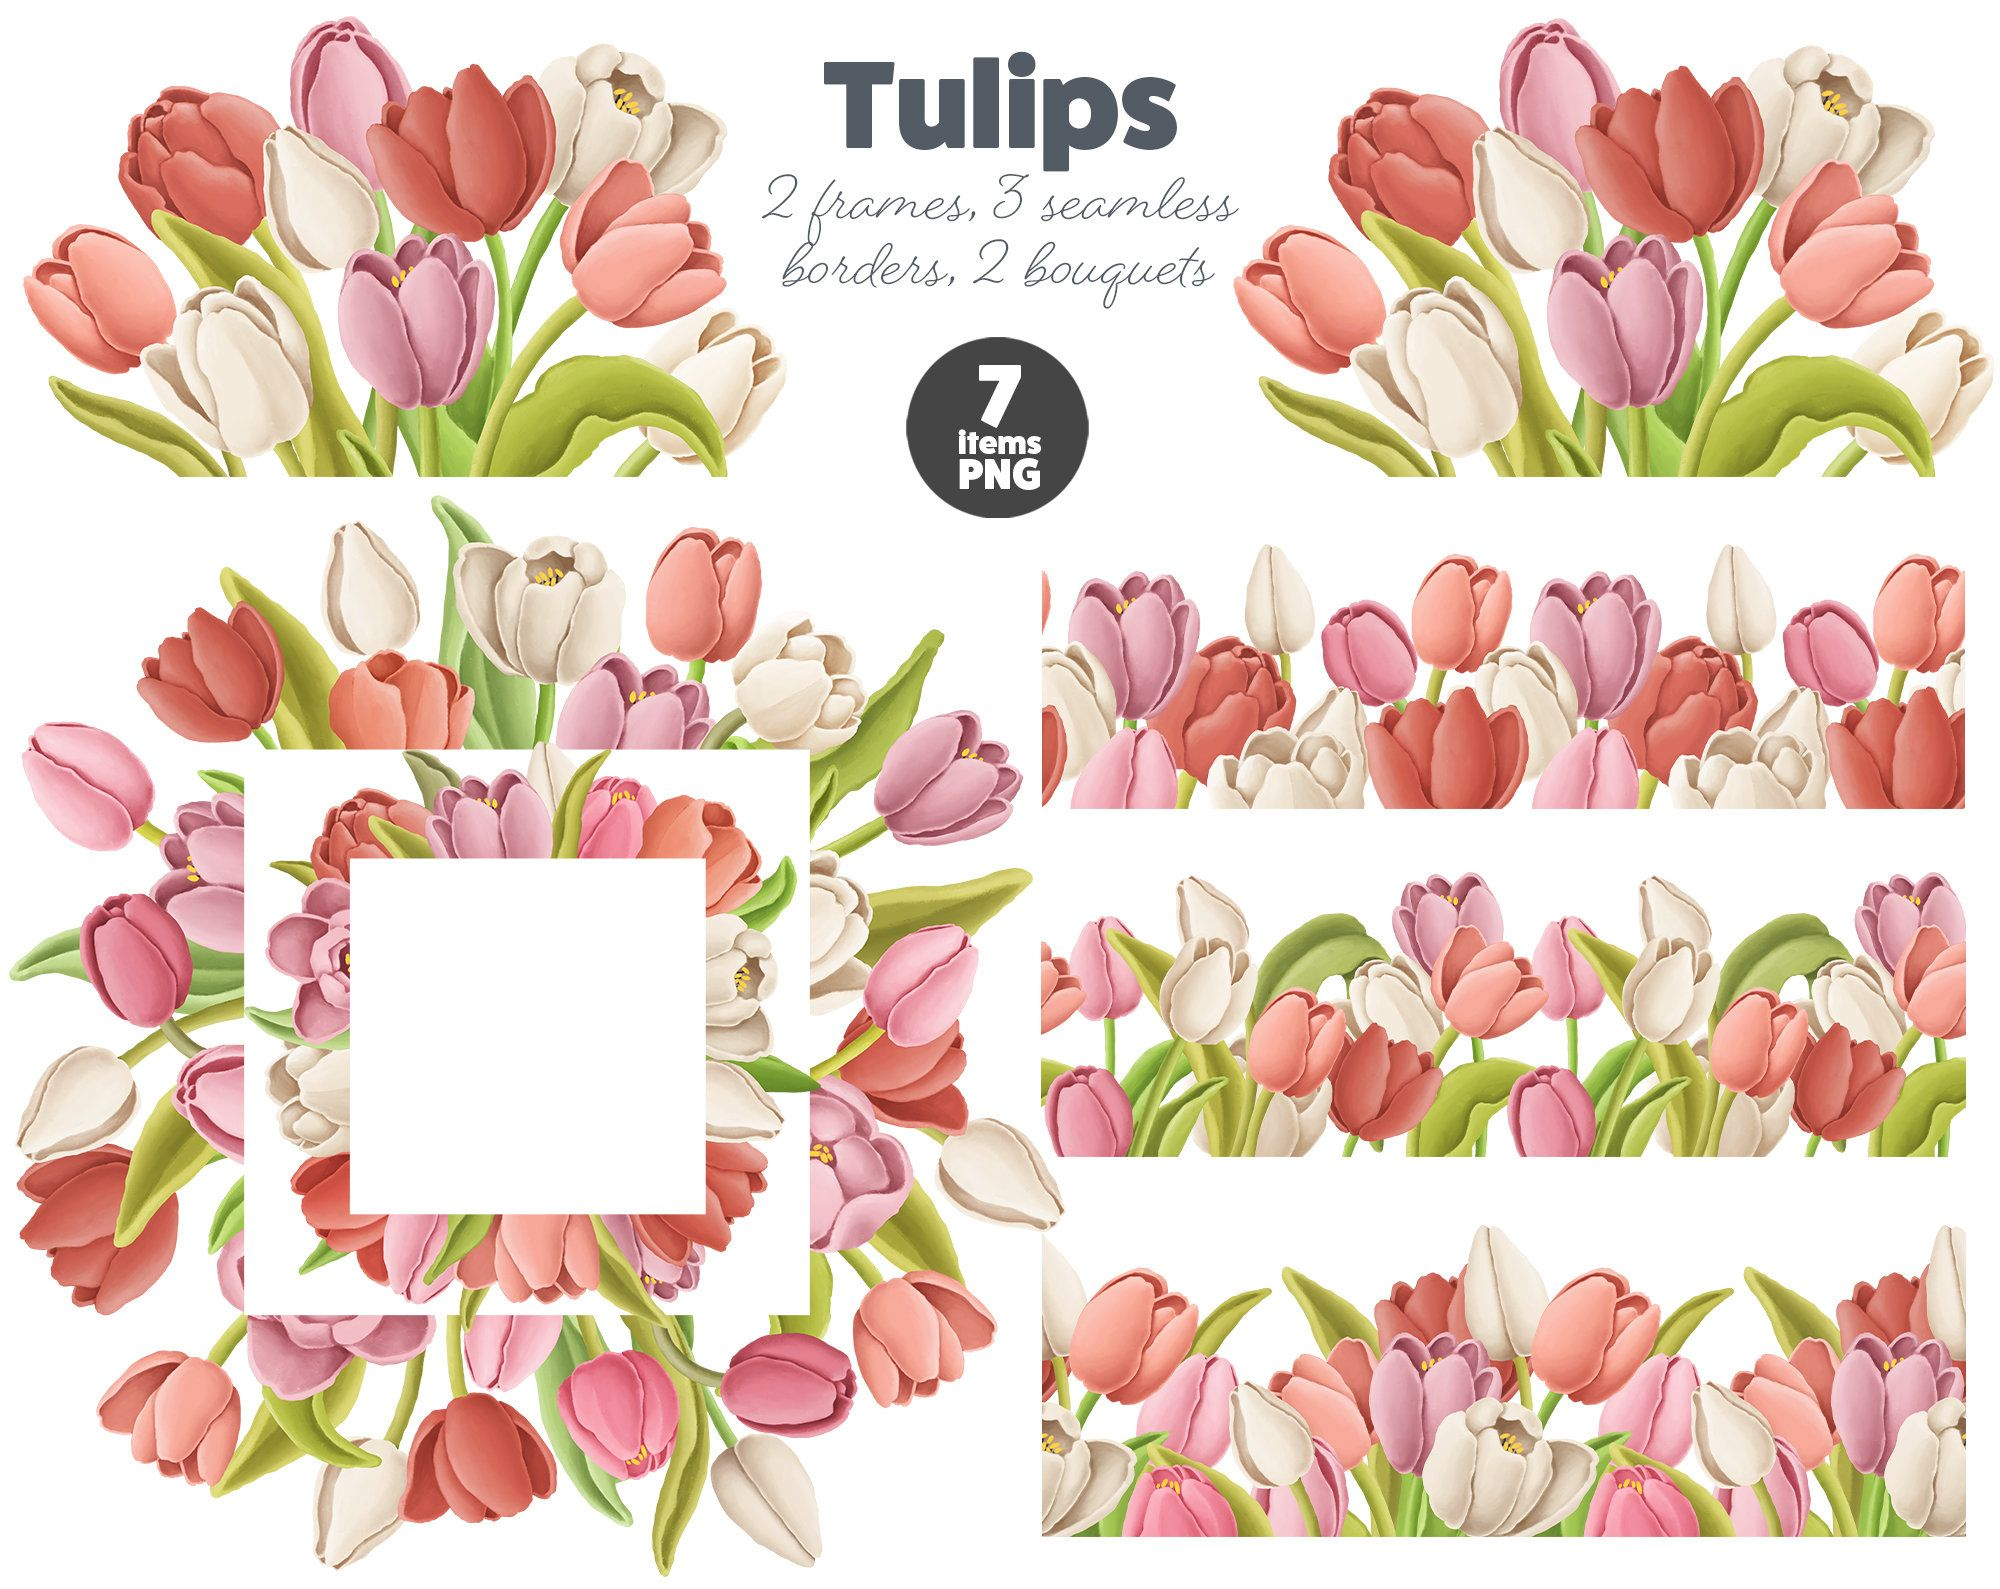 Tulip Frames And Borders Red Tulip Decoration Clipart Flower Etsy In 2020 Flower Border Png Tulips Flowers Flower Border